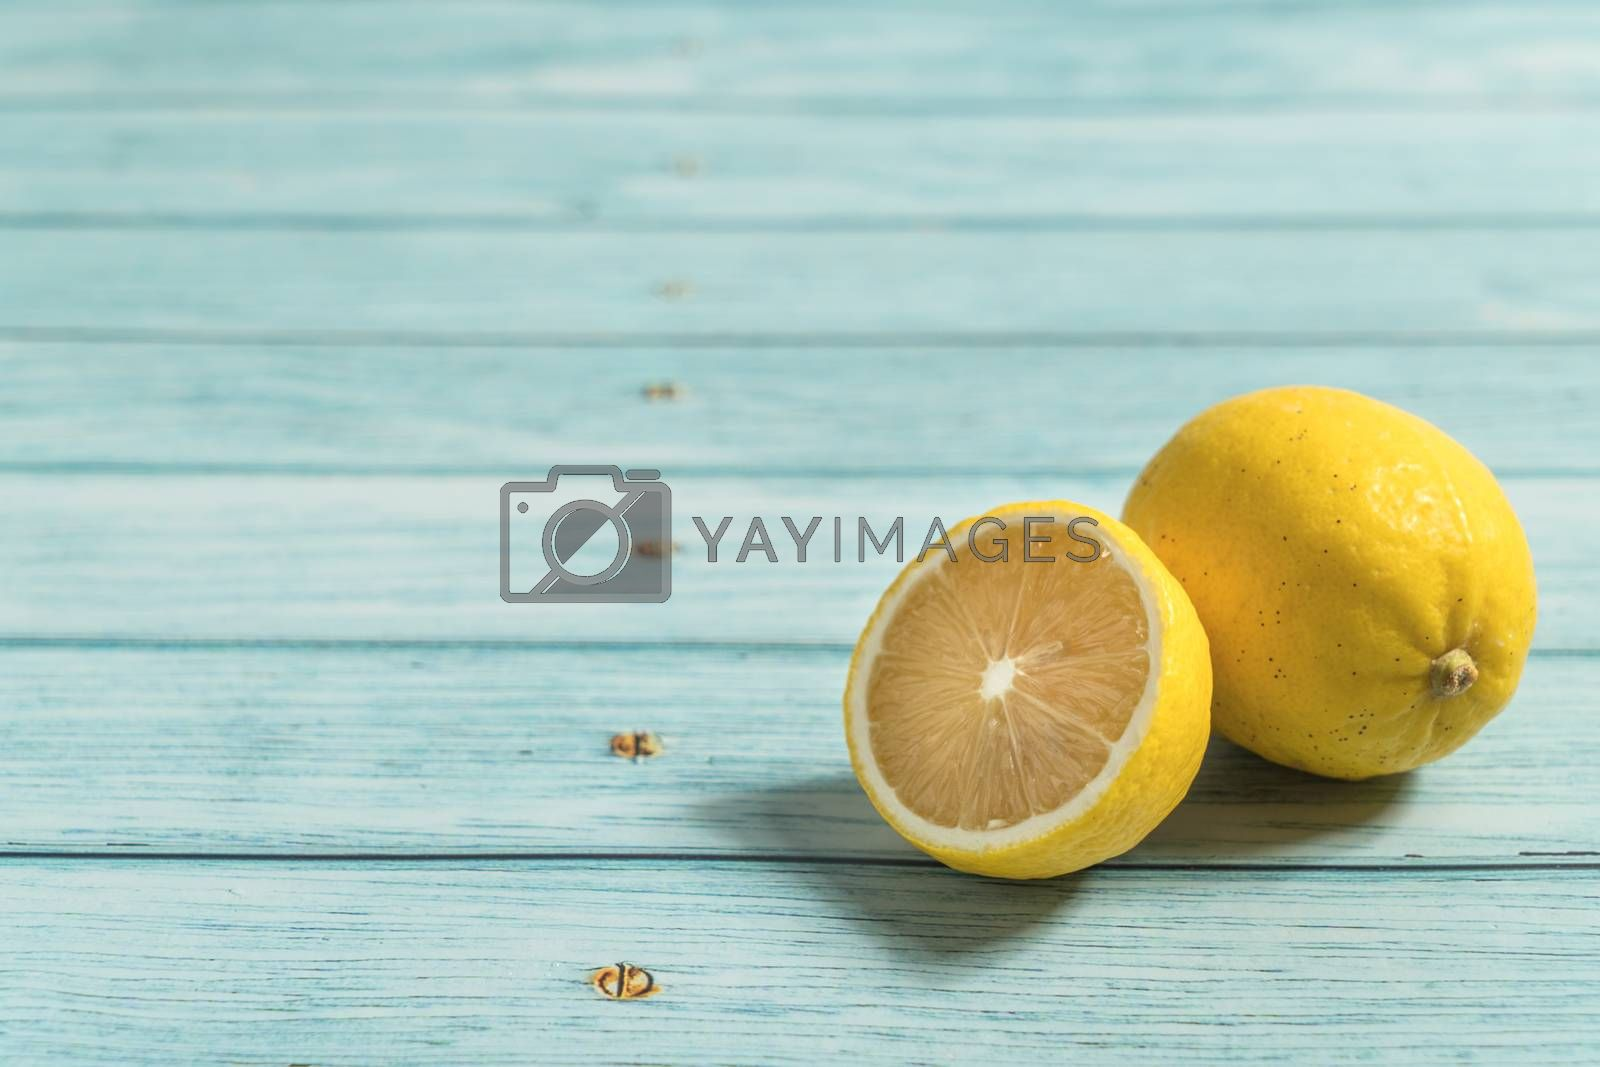 the fruit lemon on the blue table, cool light background by vinkfan